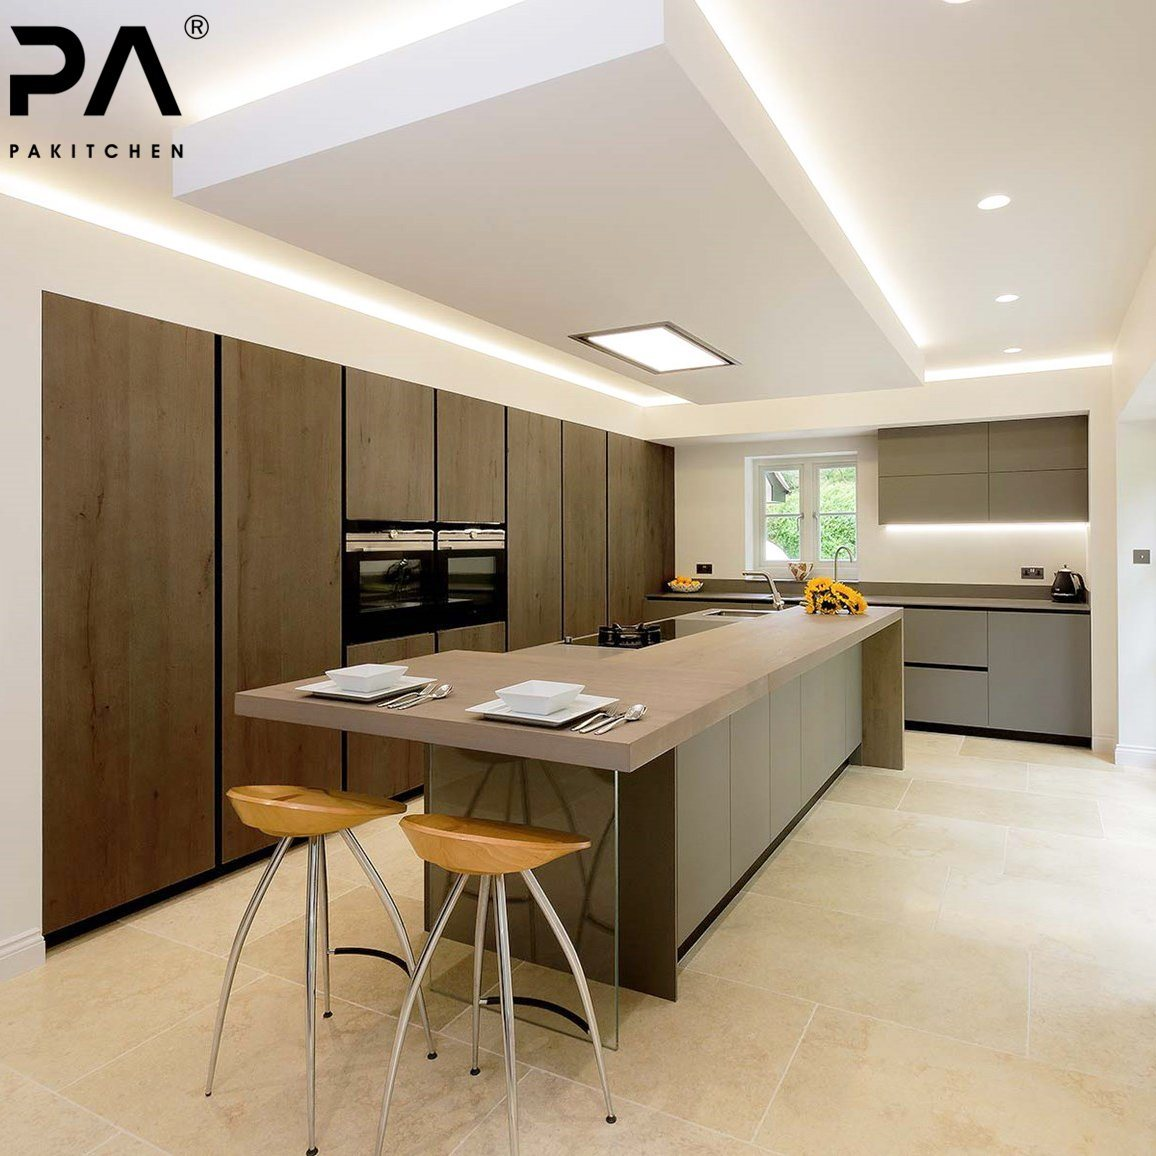 Modern Kitchen Design With Price Kitchen Factory Outlet Discontinued Price New Model Luxury Italian